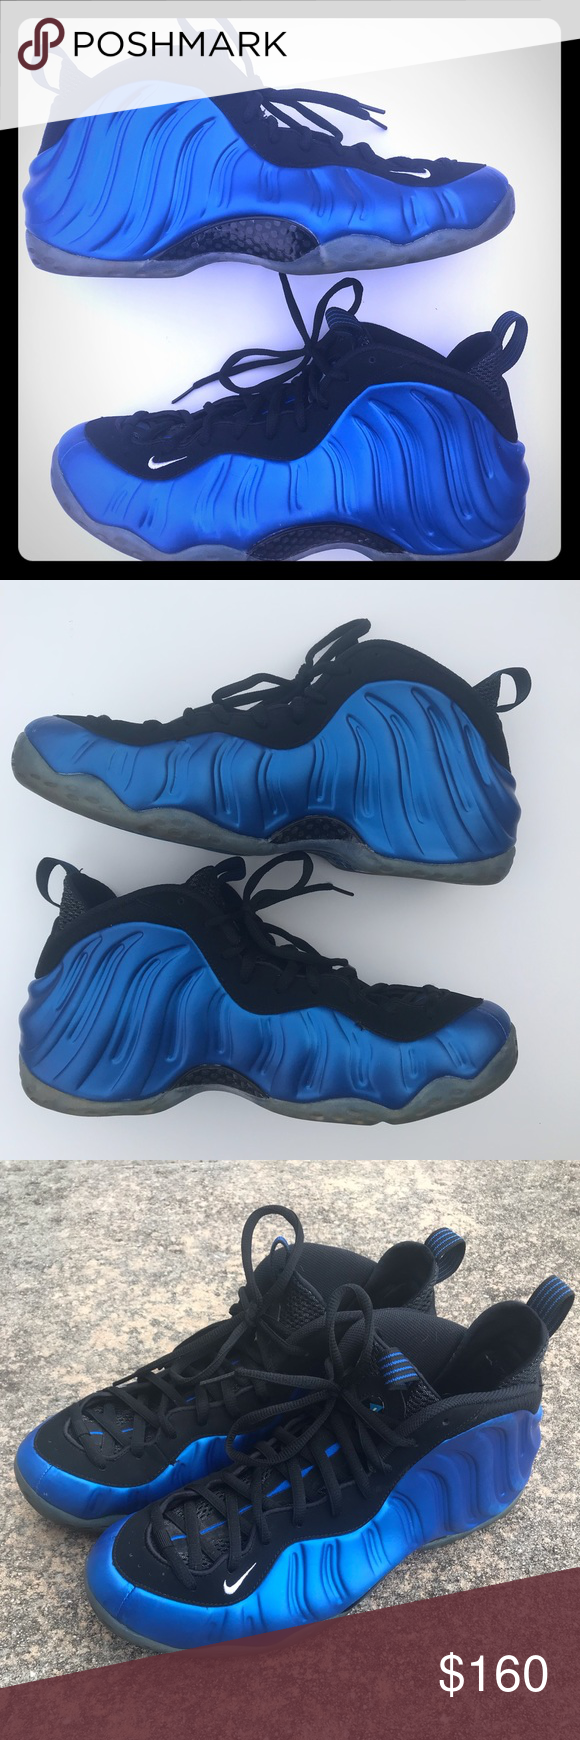 821ce2a4b694d Nike Air Foamposite One XX anniversary sz 13 One of the most iconic shoes  of all